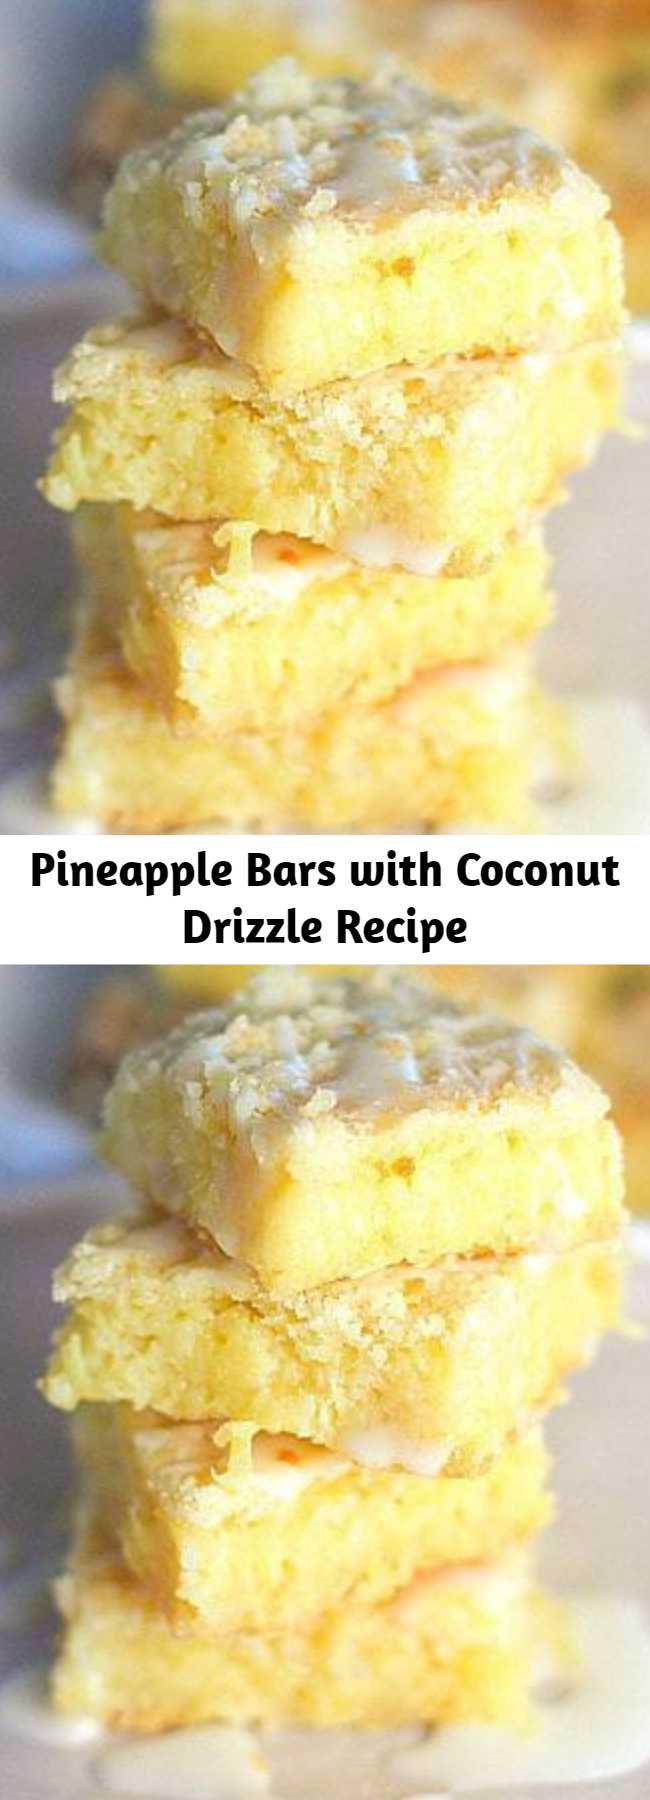 Pineapple Bars with Coconut Drizzle Recipe - Only a few ingredients and super easy to make. I topped with optional Coconut Drizzle...they are good with or without!